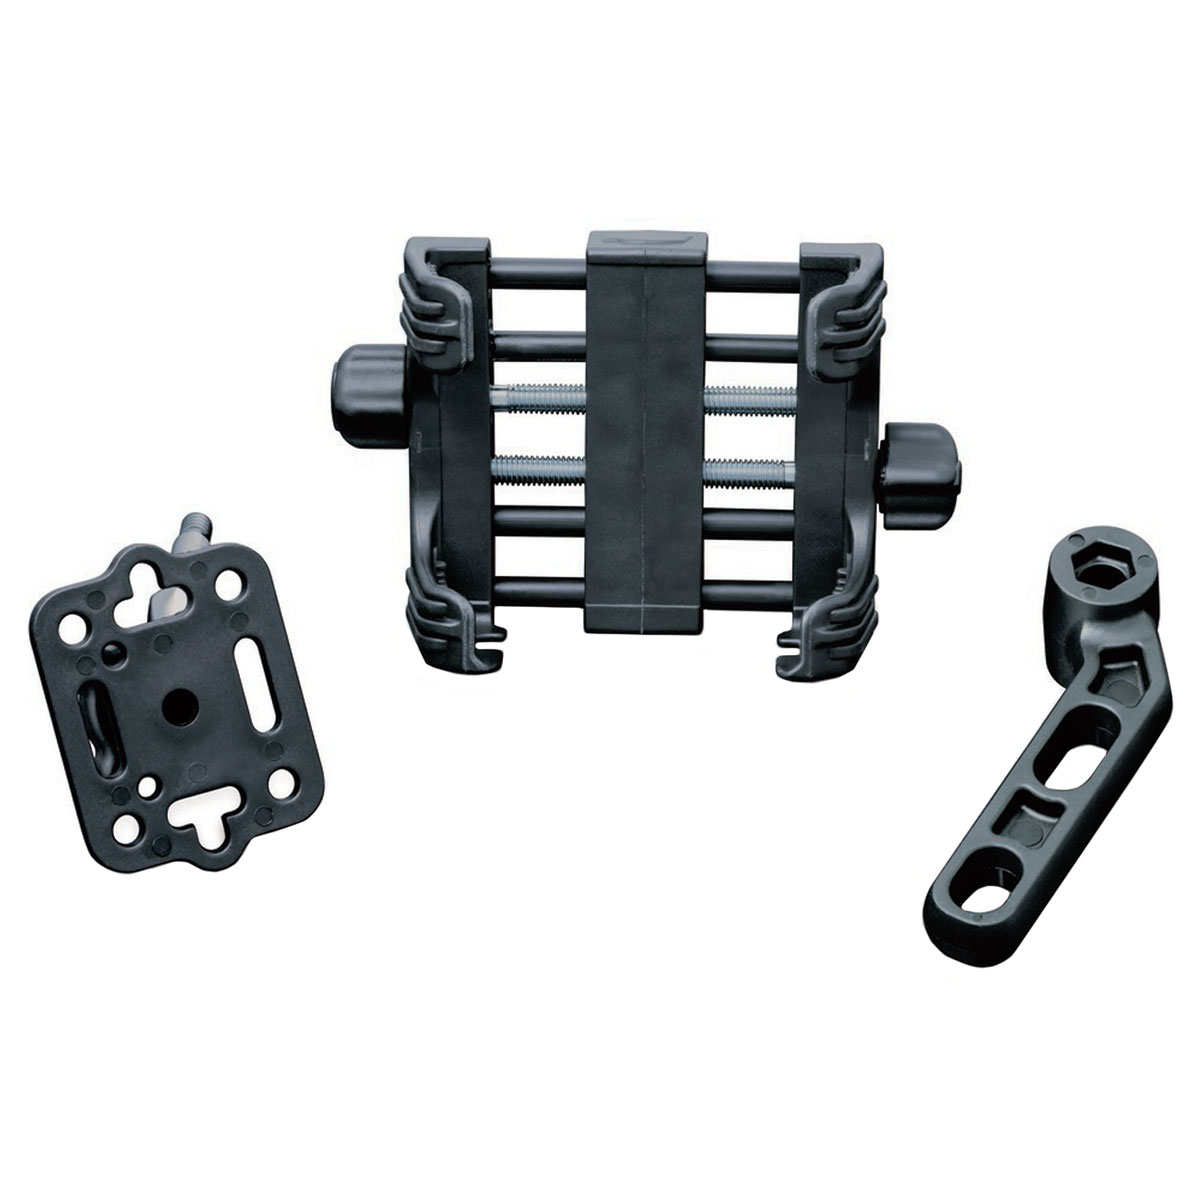 Kuryakyn Large Tech-Connect Kit for Cell Phone Mount on Clutch or Brake Perch Mount